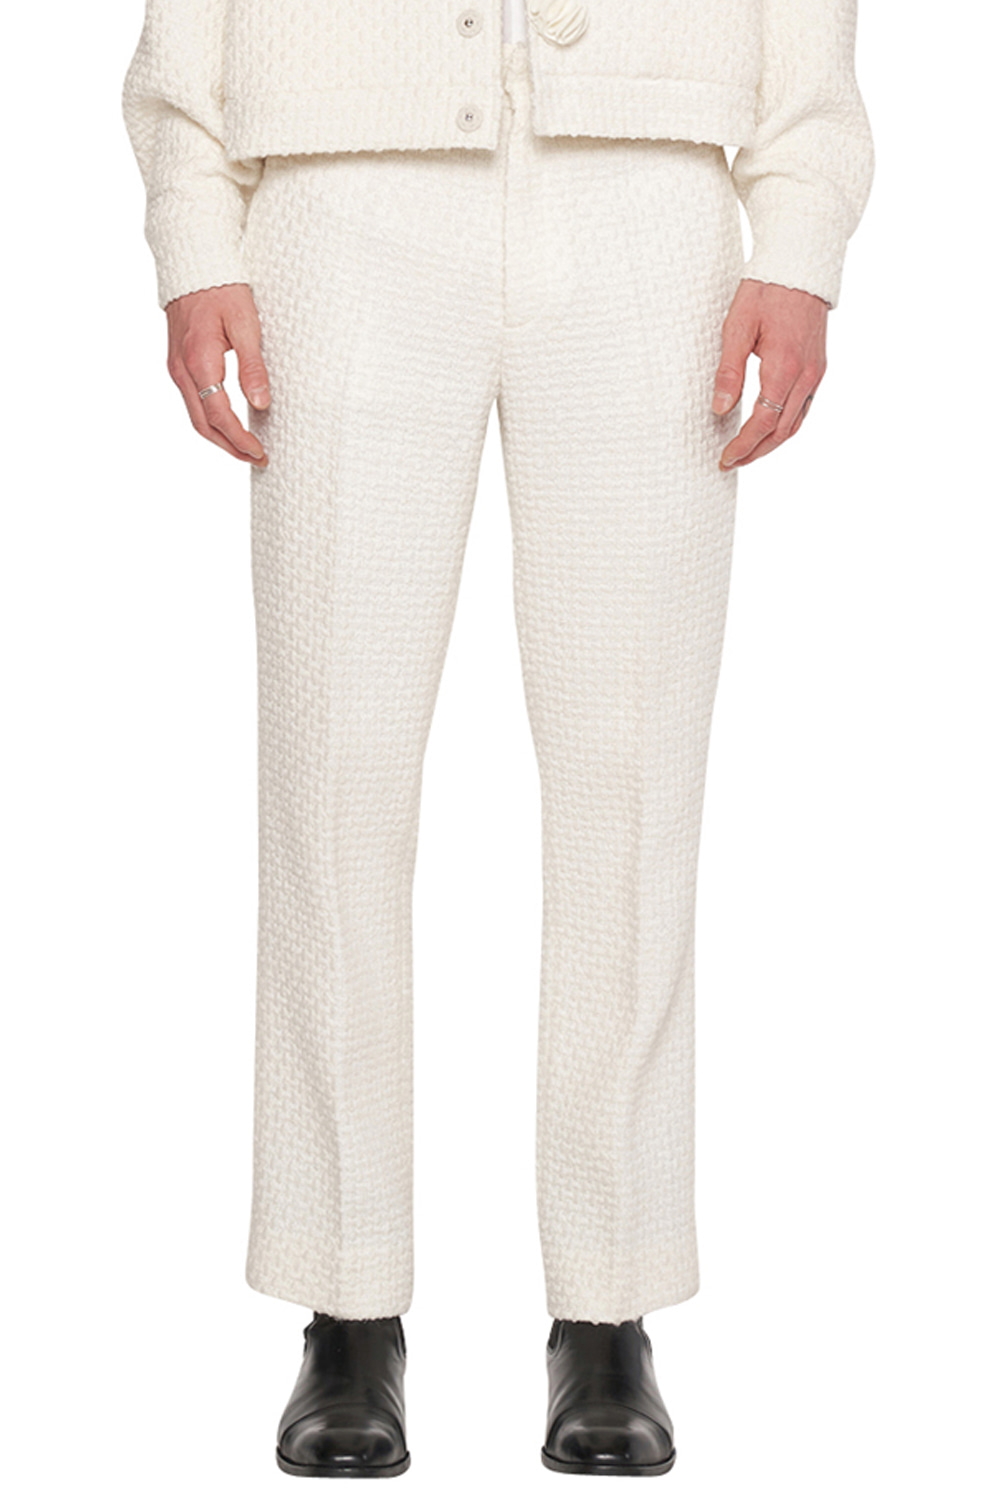 WHITE TWEED PANTS